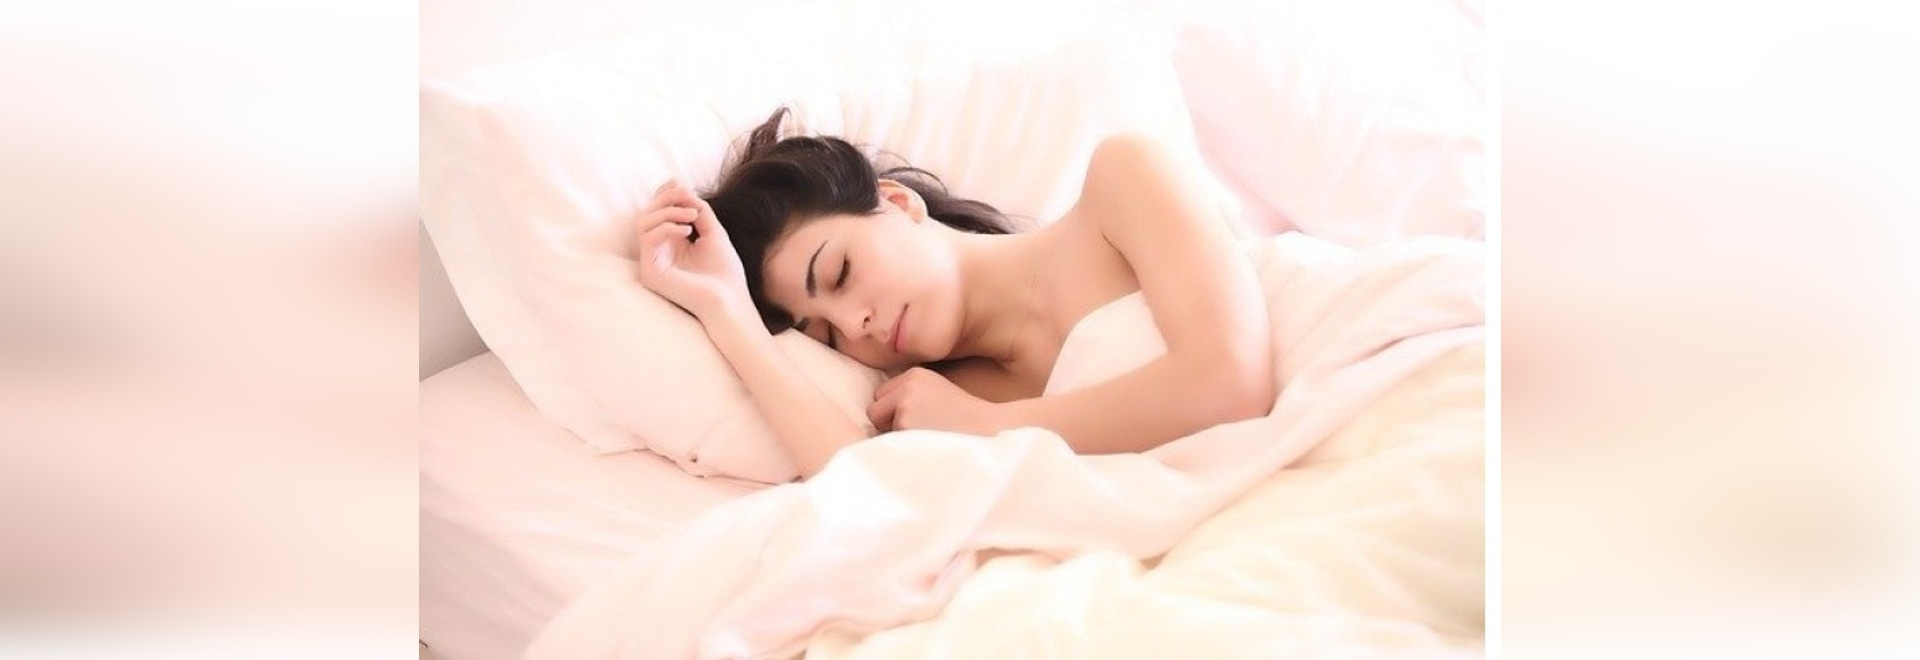 Deep Sleep Cleans Your Brain, Scientists Discover